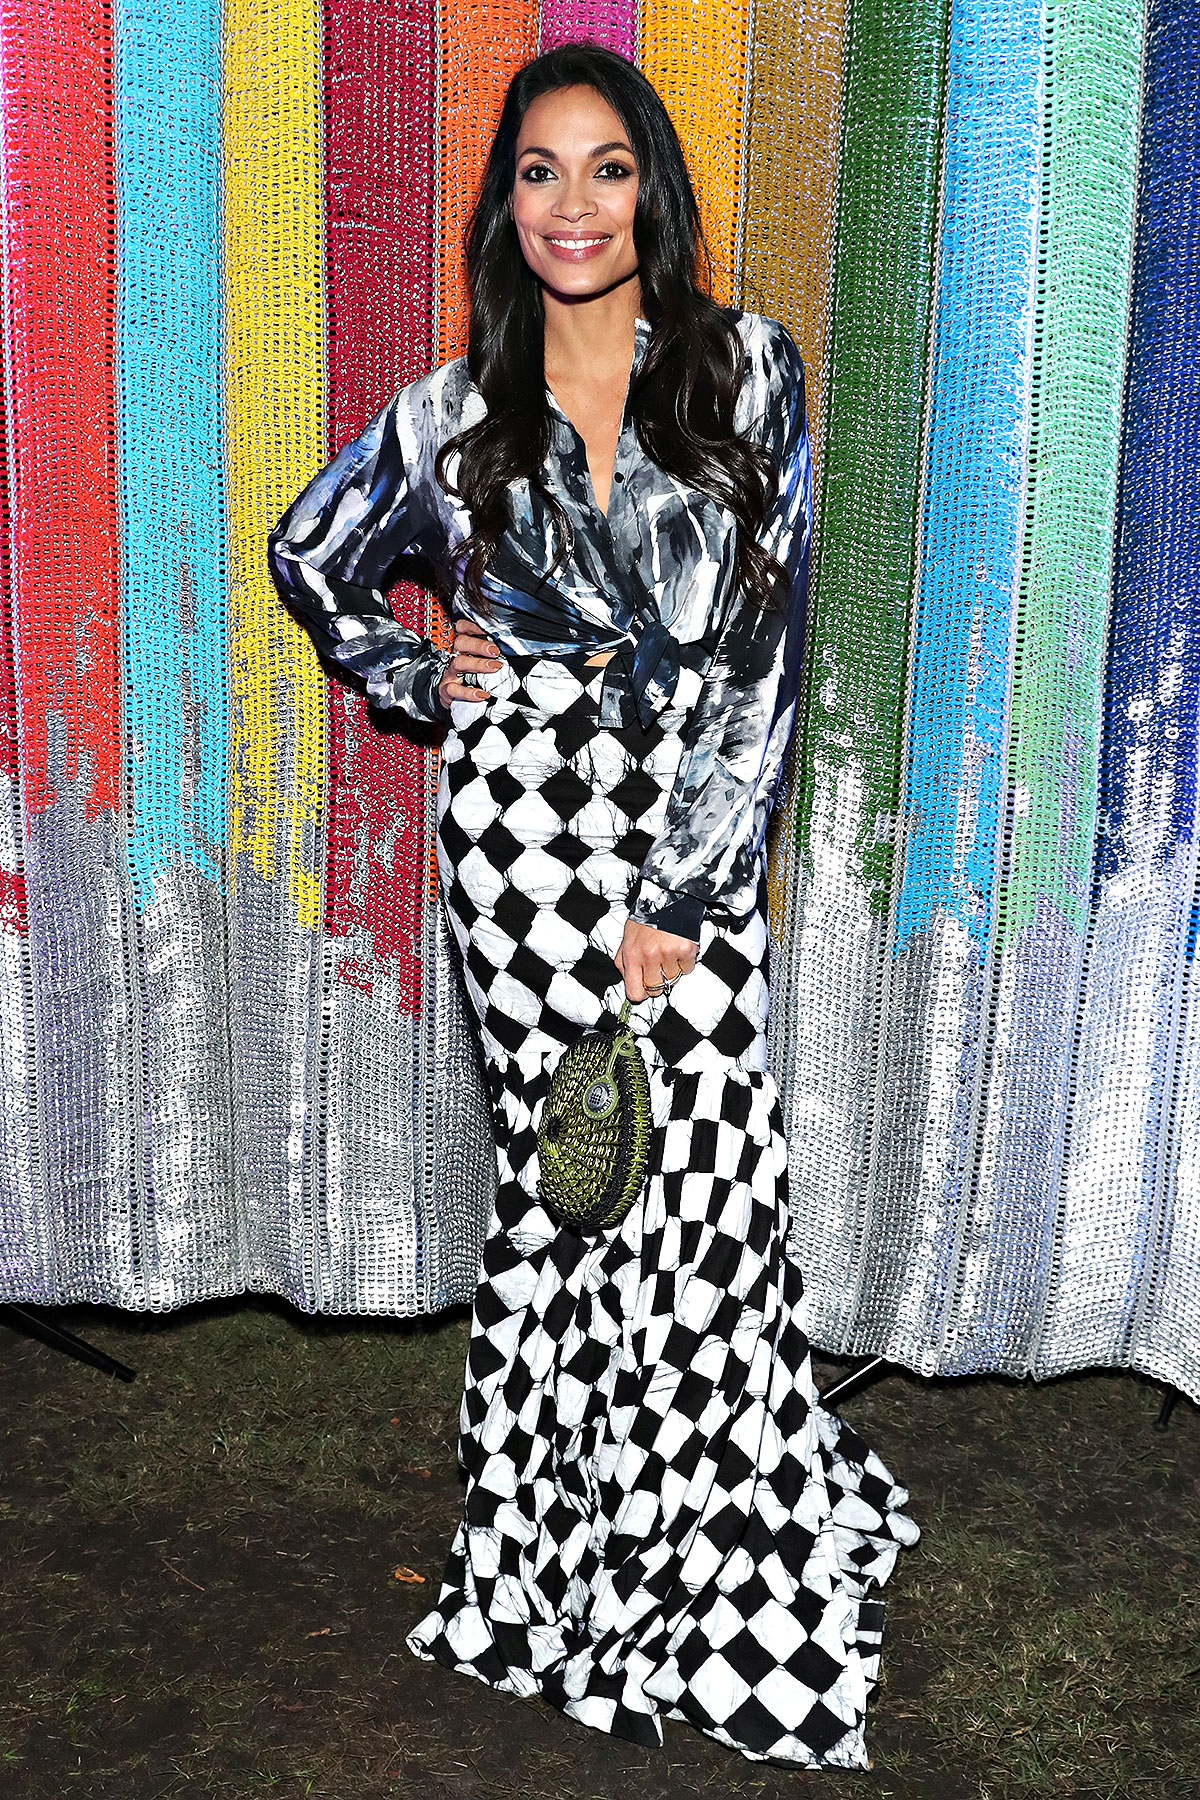 MIAMI BEACH, FL - DECEMBER 05: Actress Rosario Dawson attends the #TogetherBand Party during Art Basel Miami 2019 at Miami Beach Botanical Garden on December 5, 2019